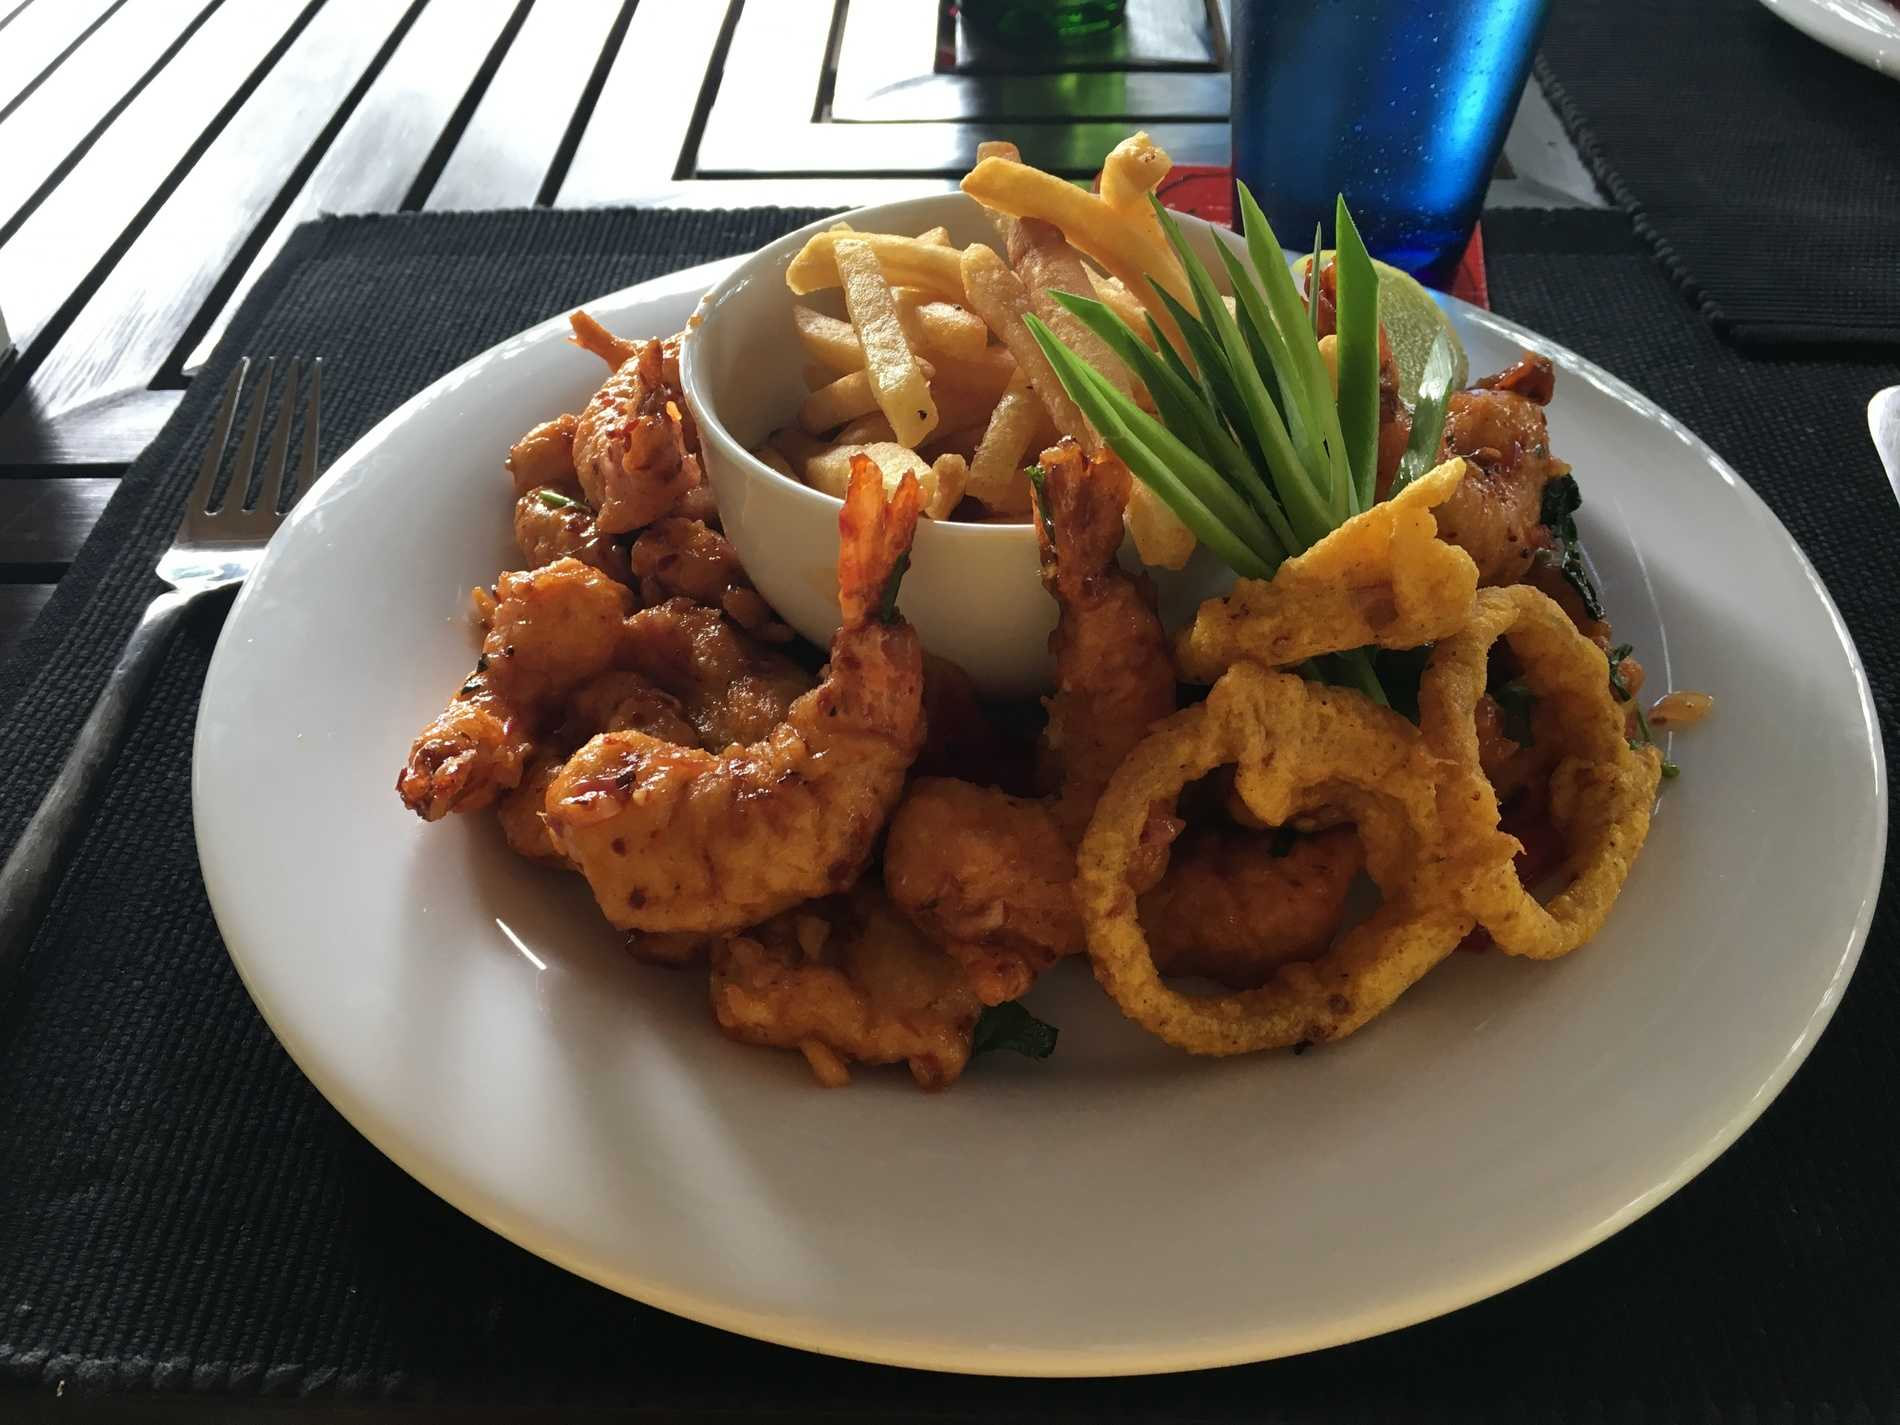 Mixed seafood, catch of the day